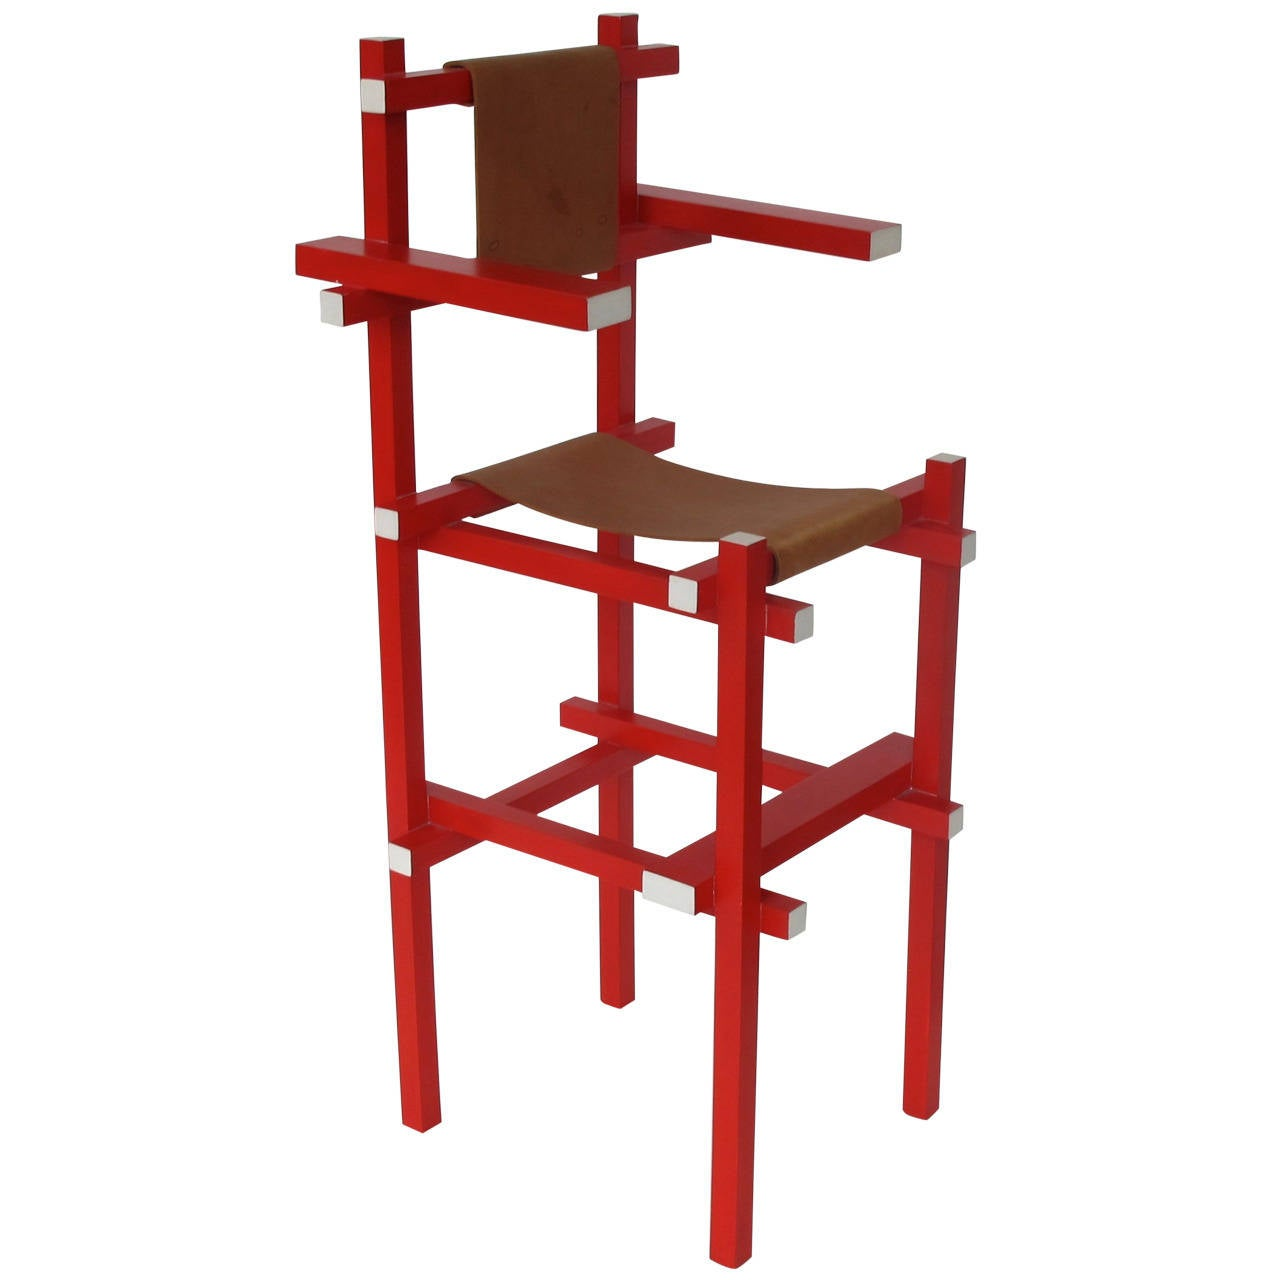 Gerrit rietveld chair for sale - Gerrit Rietveld Rare Children S High Chair By Gerard Van De Groenekan 1